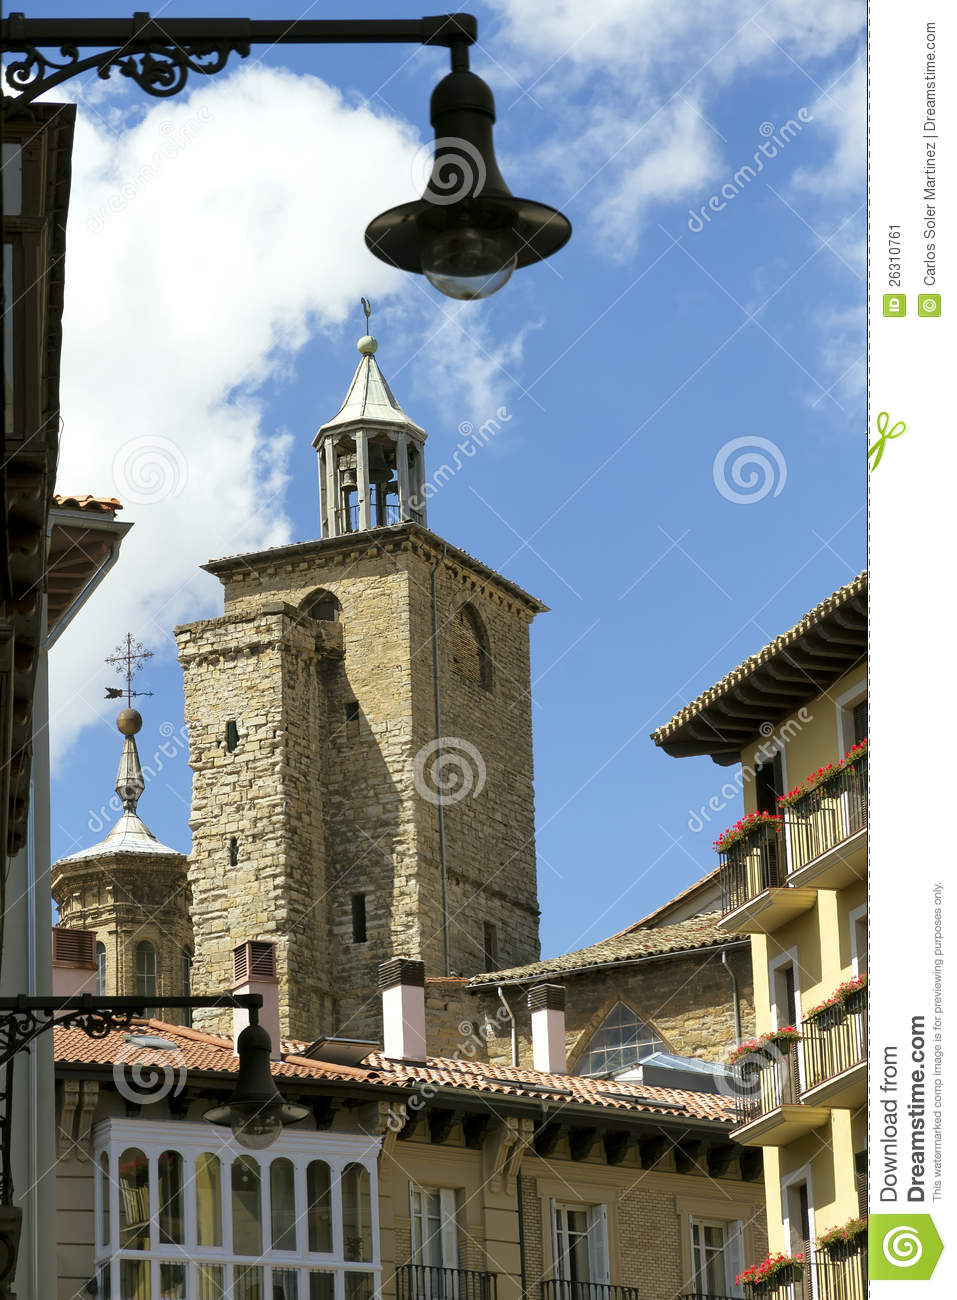 Navarra Spain  City new picture : More similar stock images of ` Cathedral of Pamplona, Navarra, Spain `